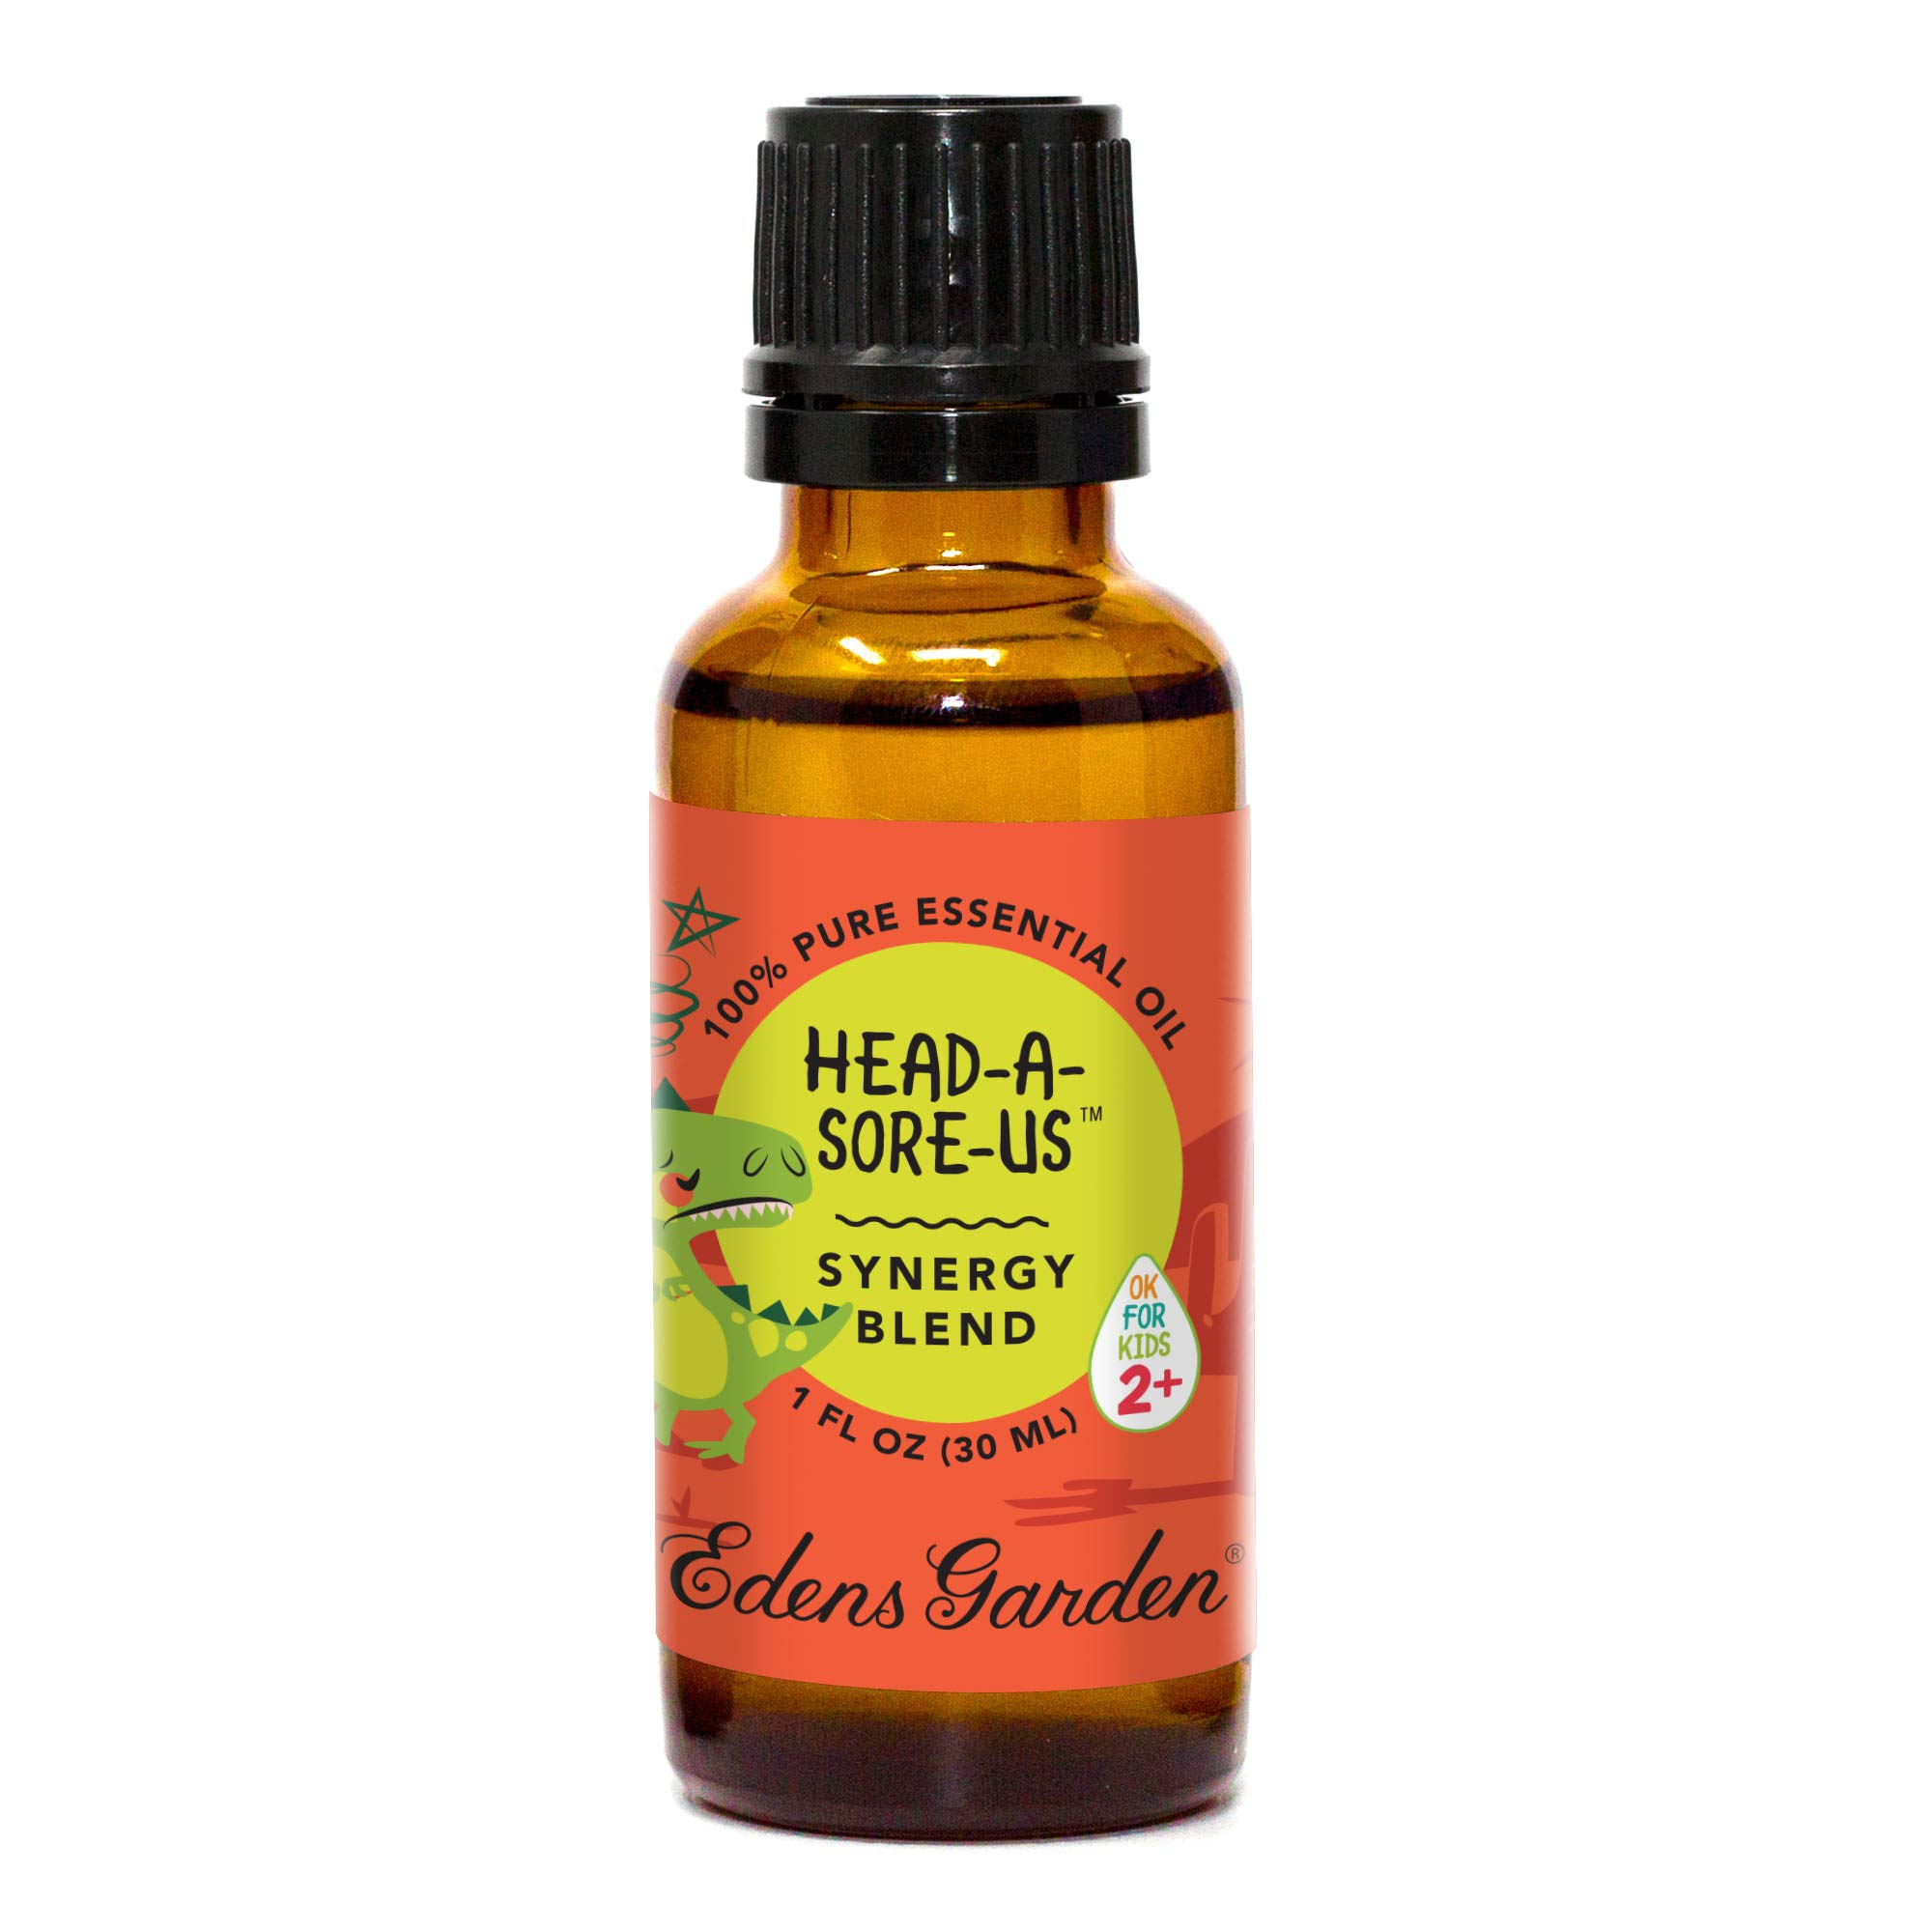 Edens Garden Head-A-Sore-Us Ok for Kids Synergy Blend Essential Oil, Frankincense, Lavender and Roman Chamomile, 30 mL